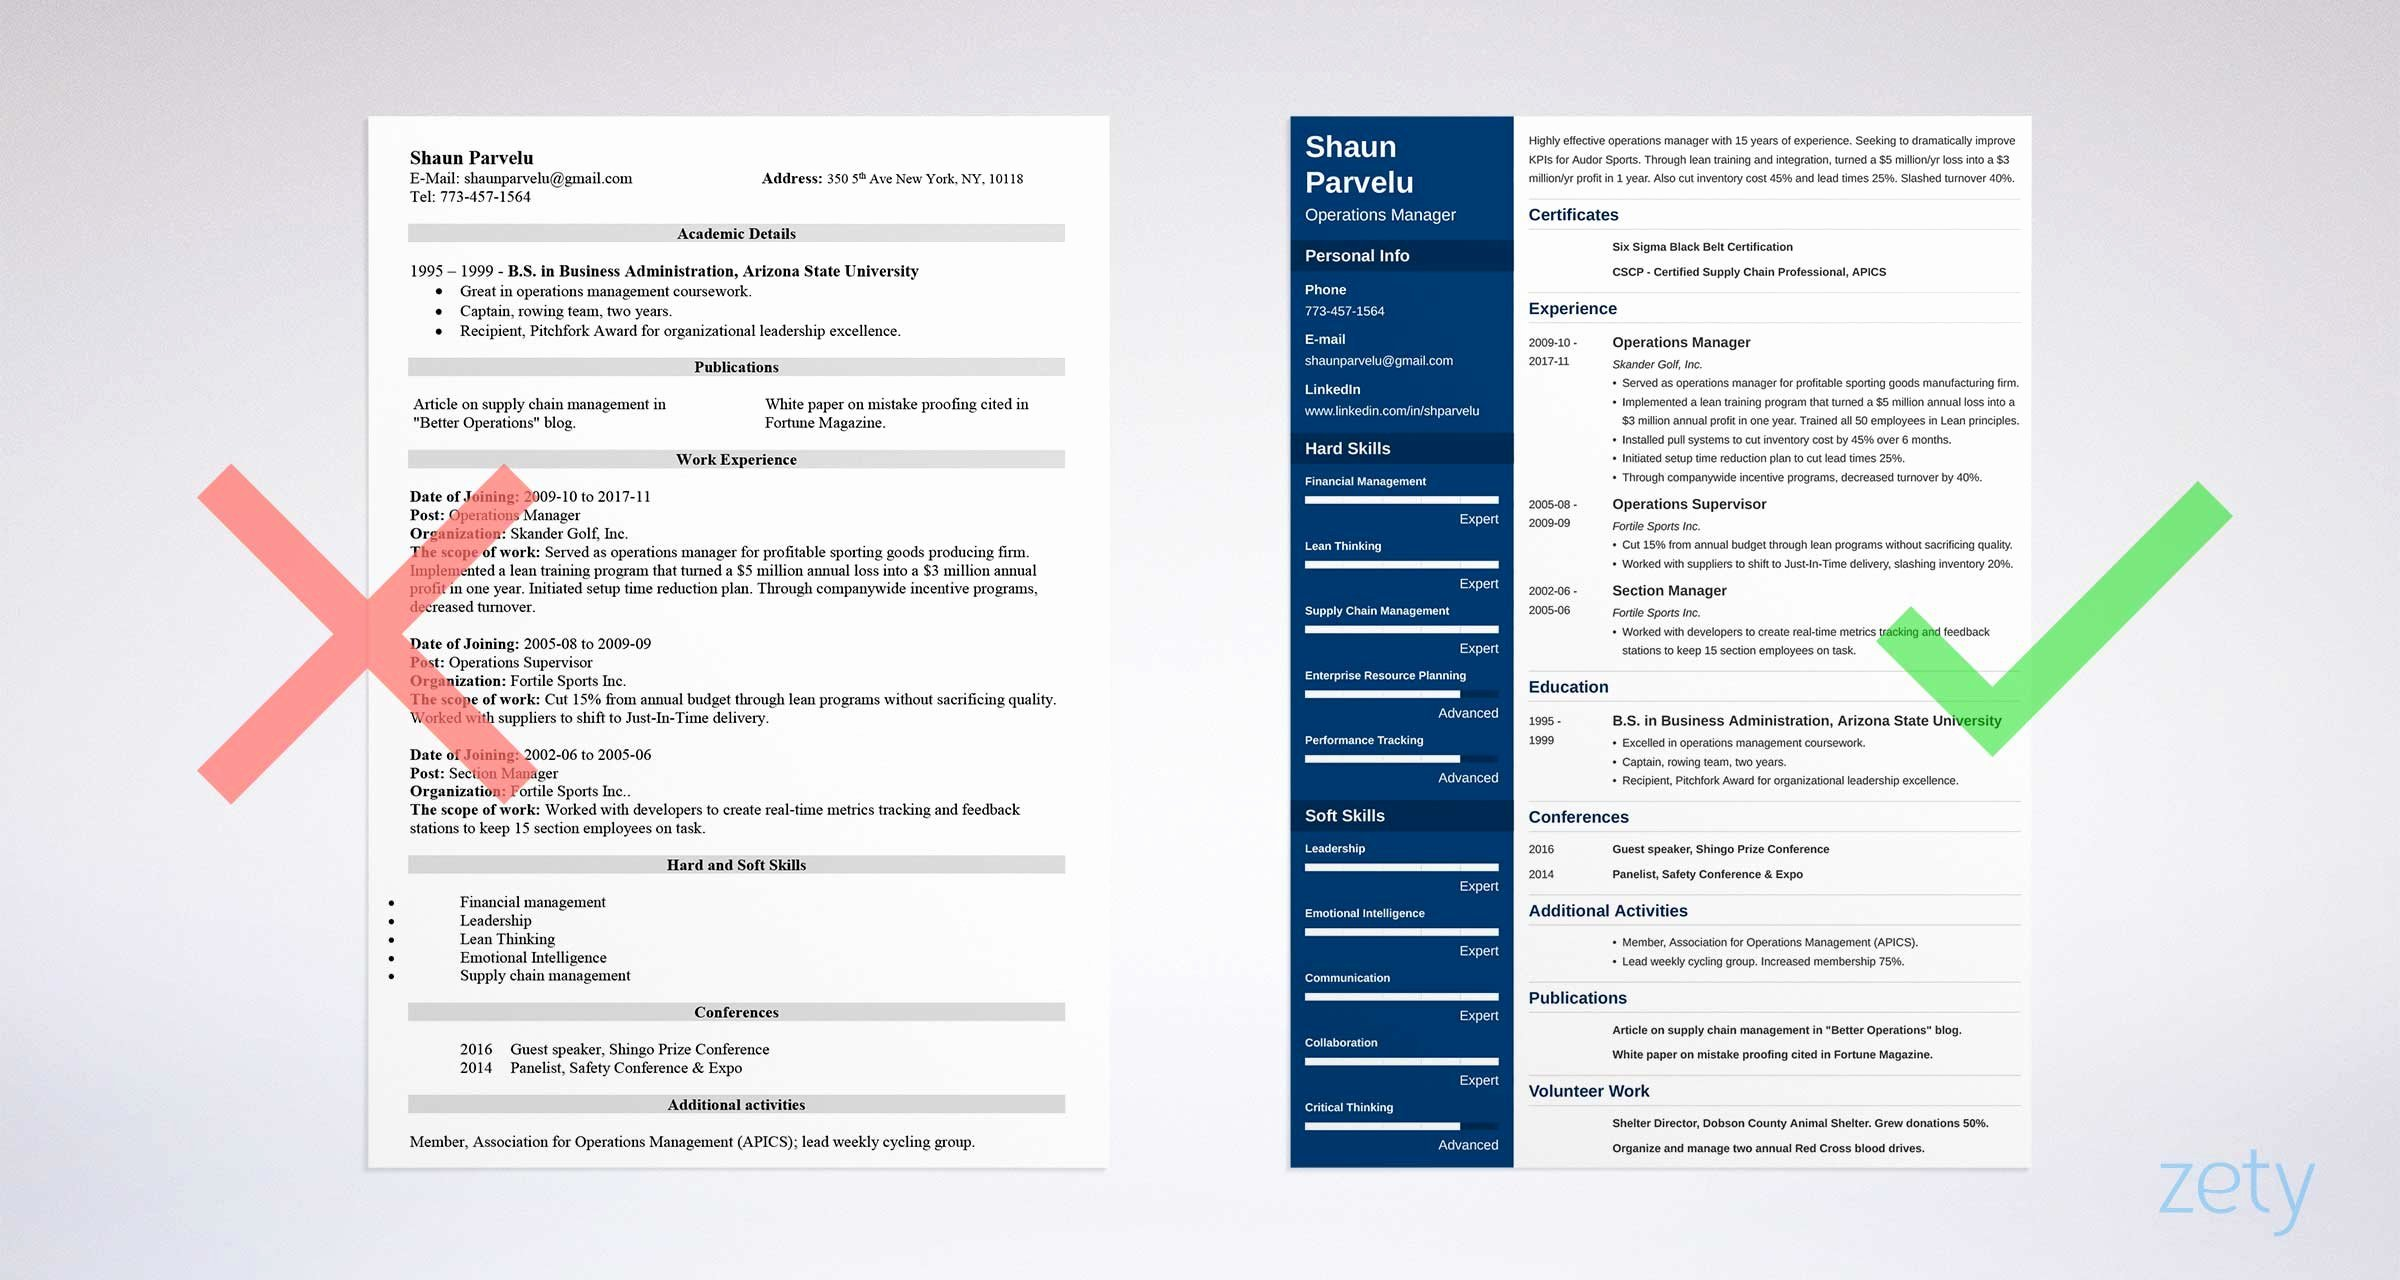 Operations Manager Job Description Template Fresh Operations Manager Resume Sample & Writing Guide [ 20